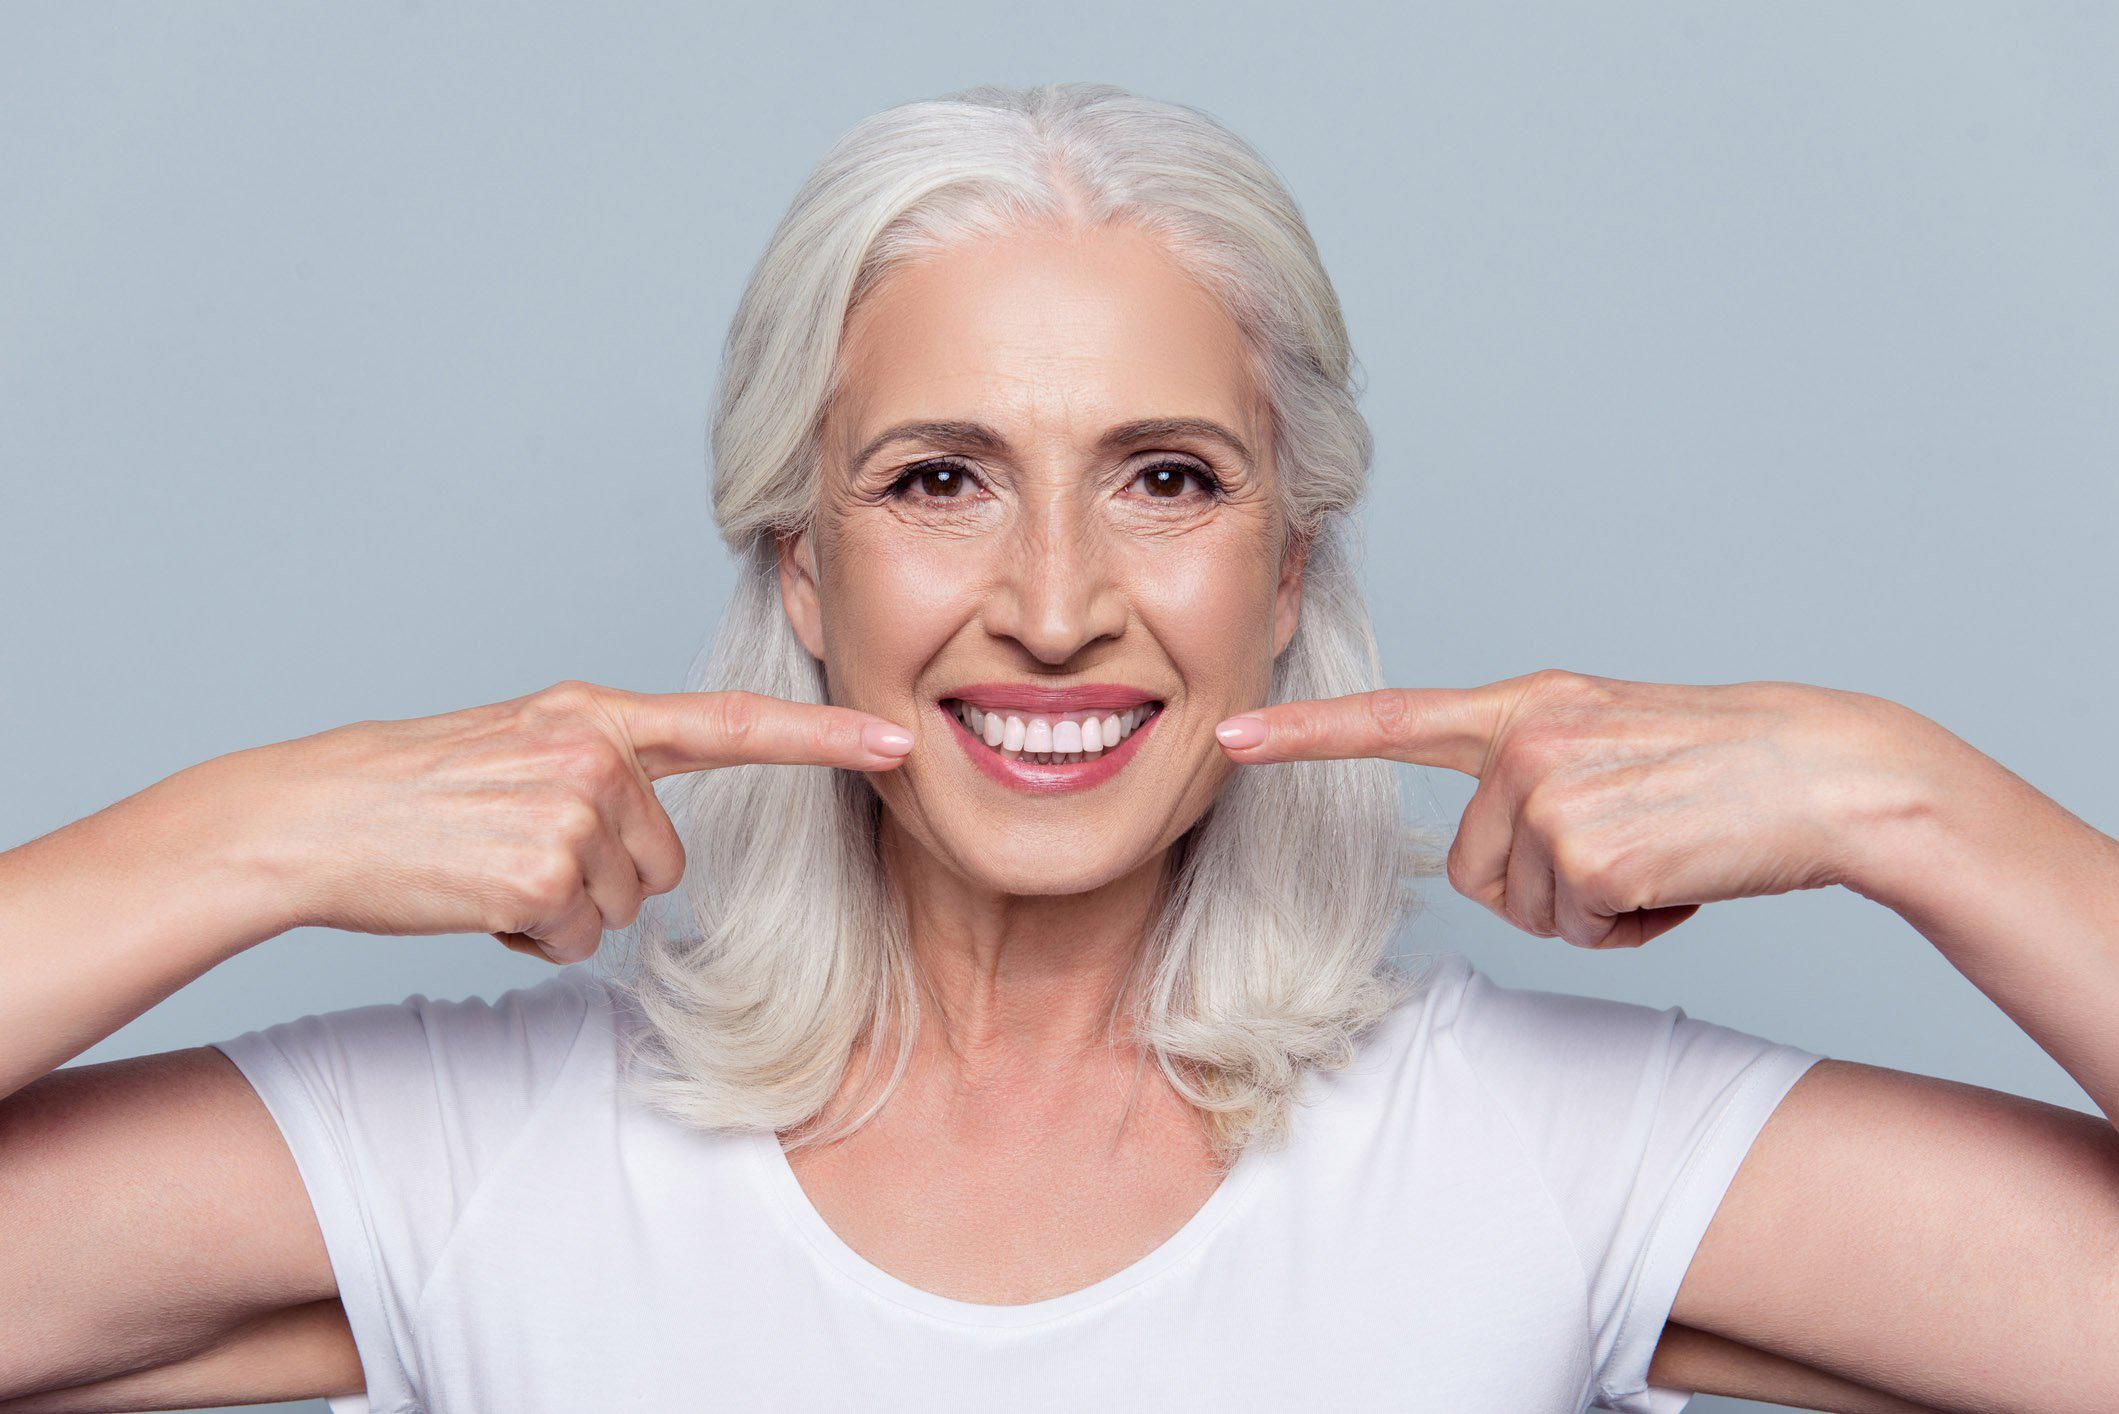 Concept of having strong healthy straight white teeth at old age.